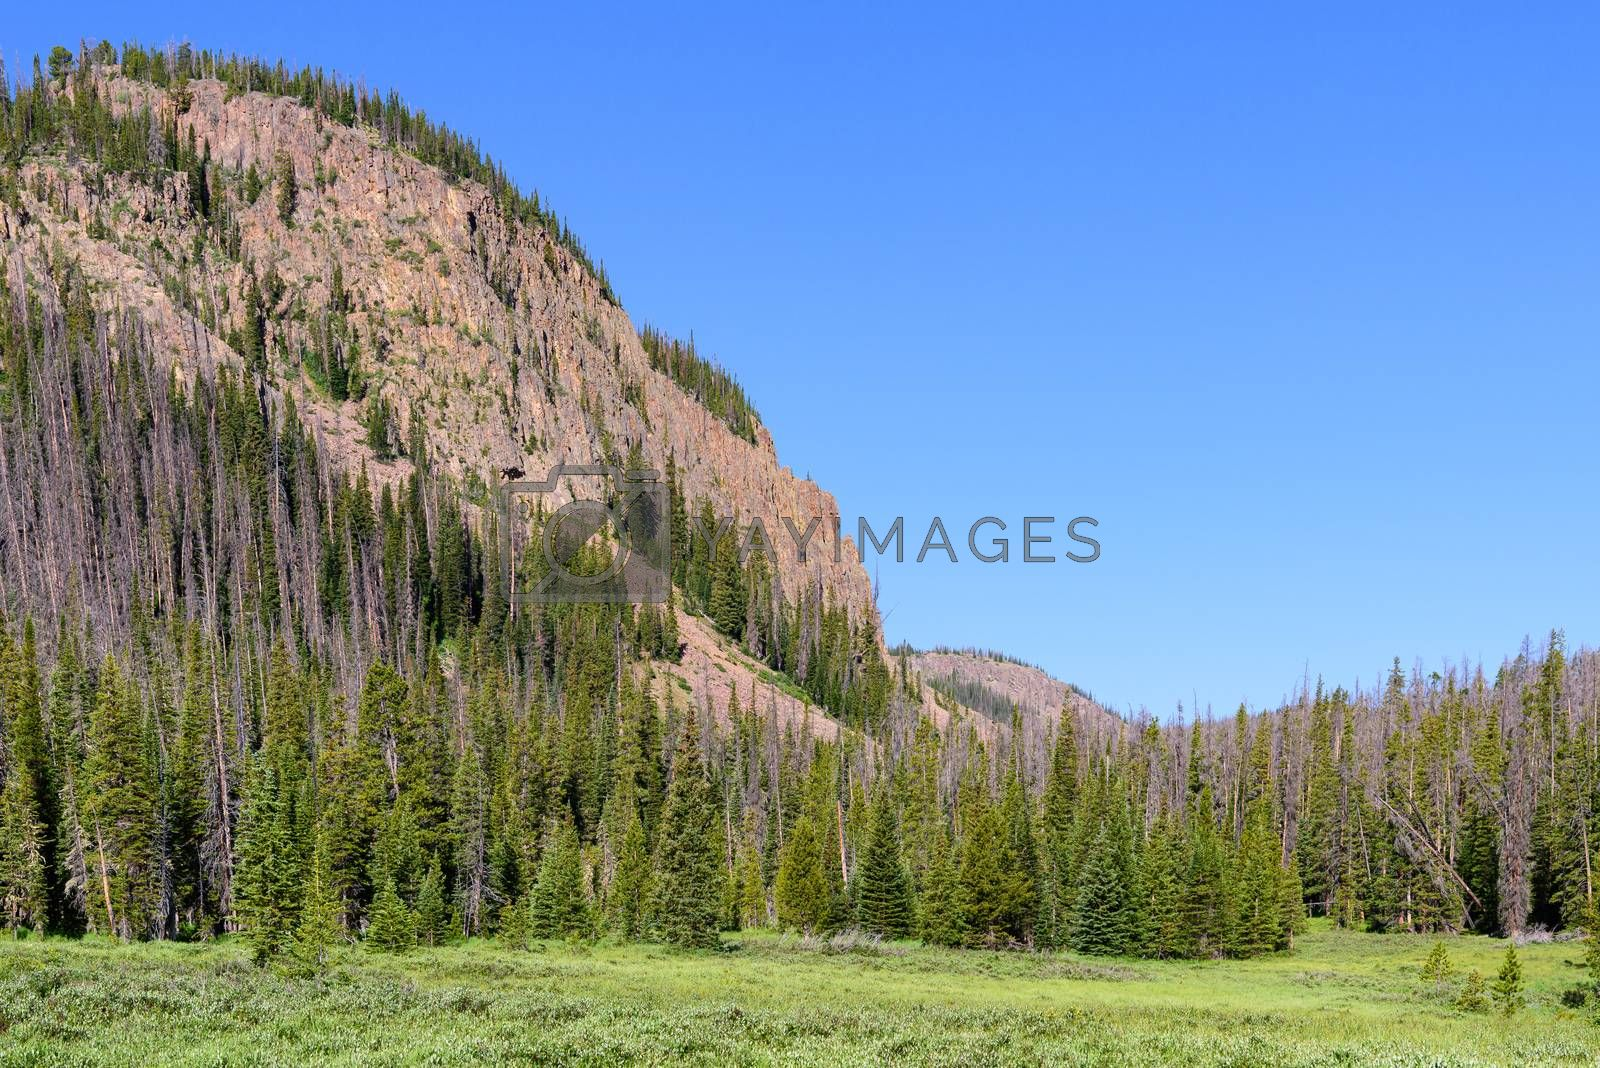 Colorado Scenic Beauty. The Mountains of Northern Colorado by Gary Gray